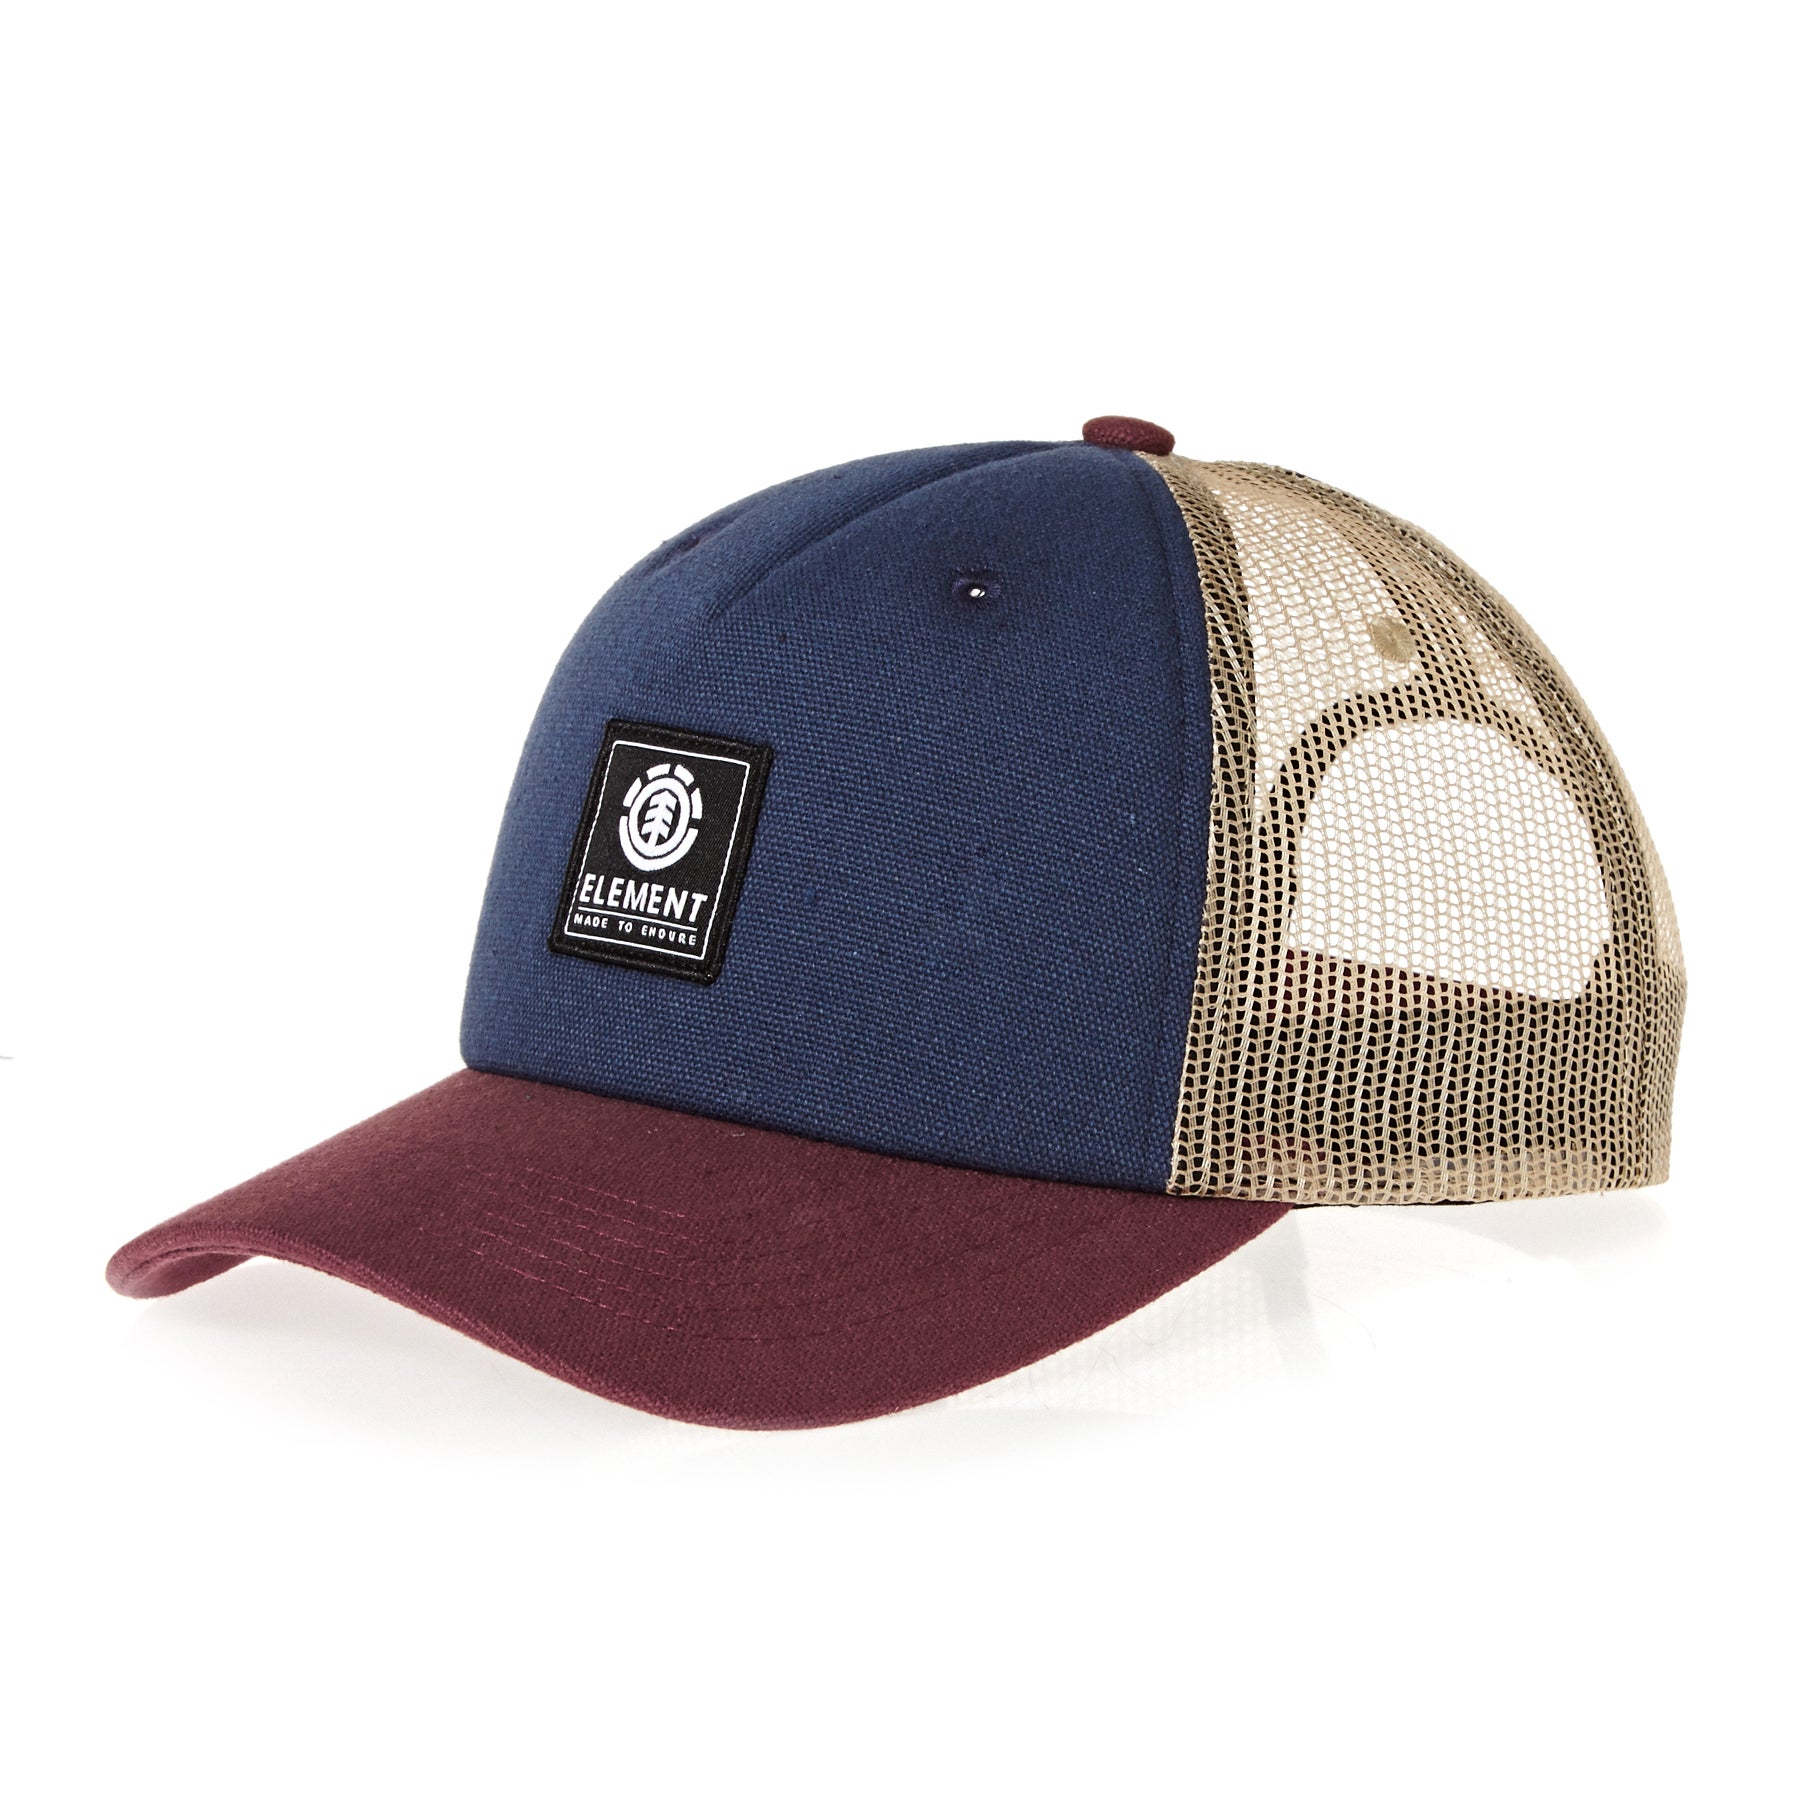 Element Icon Mesh Cap - Chocolate